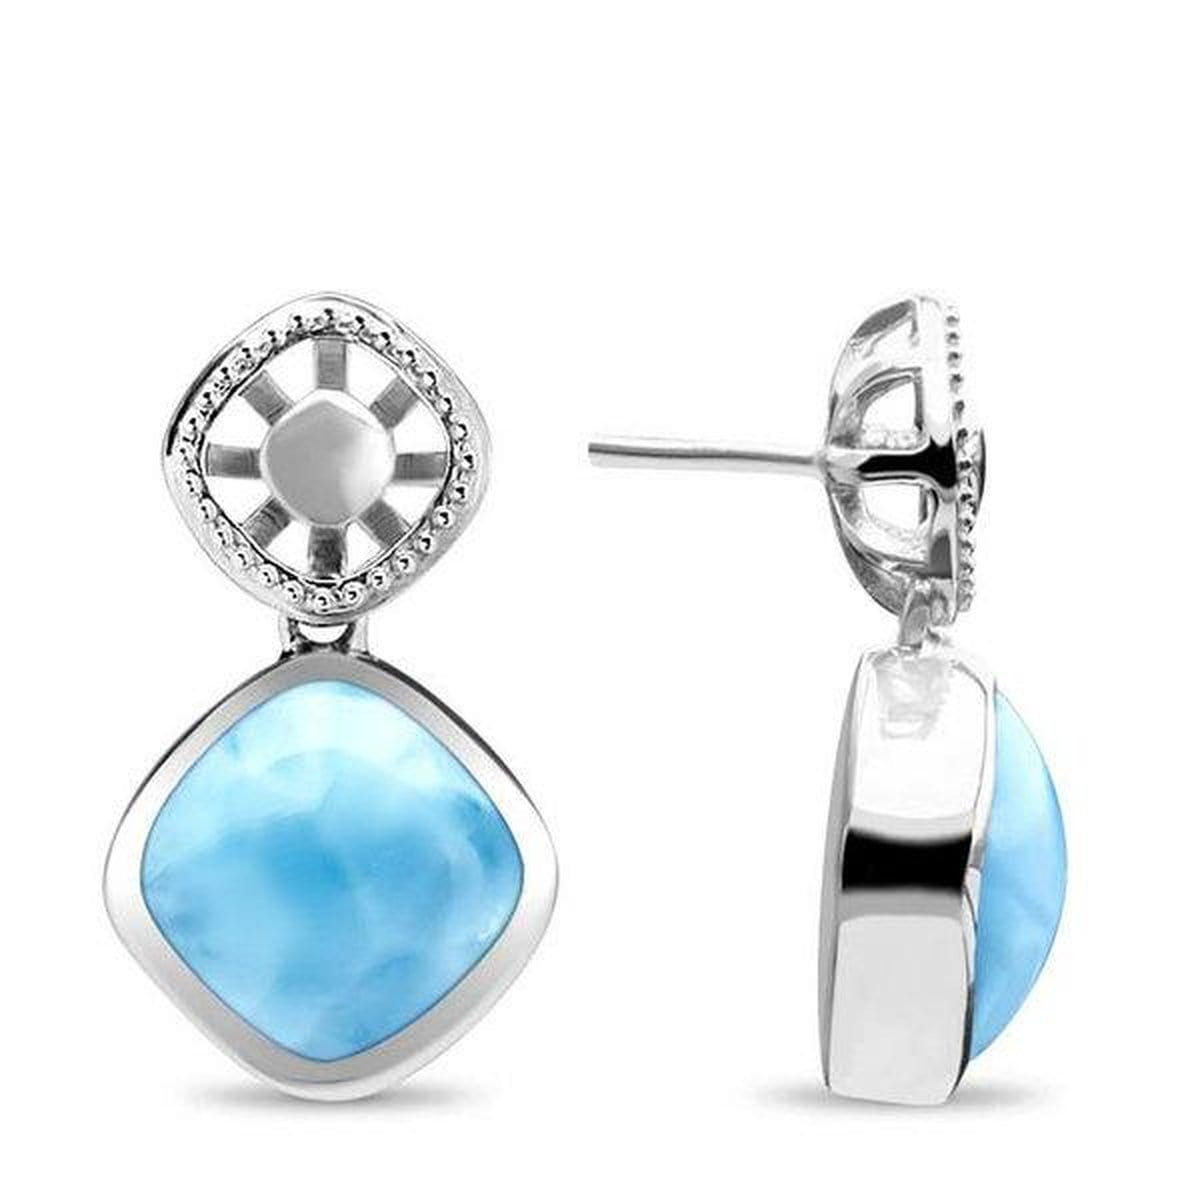 Aspen Earrings - Easpe00-00-Marahlago Larimar-Renee Taylor Gallery